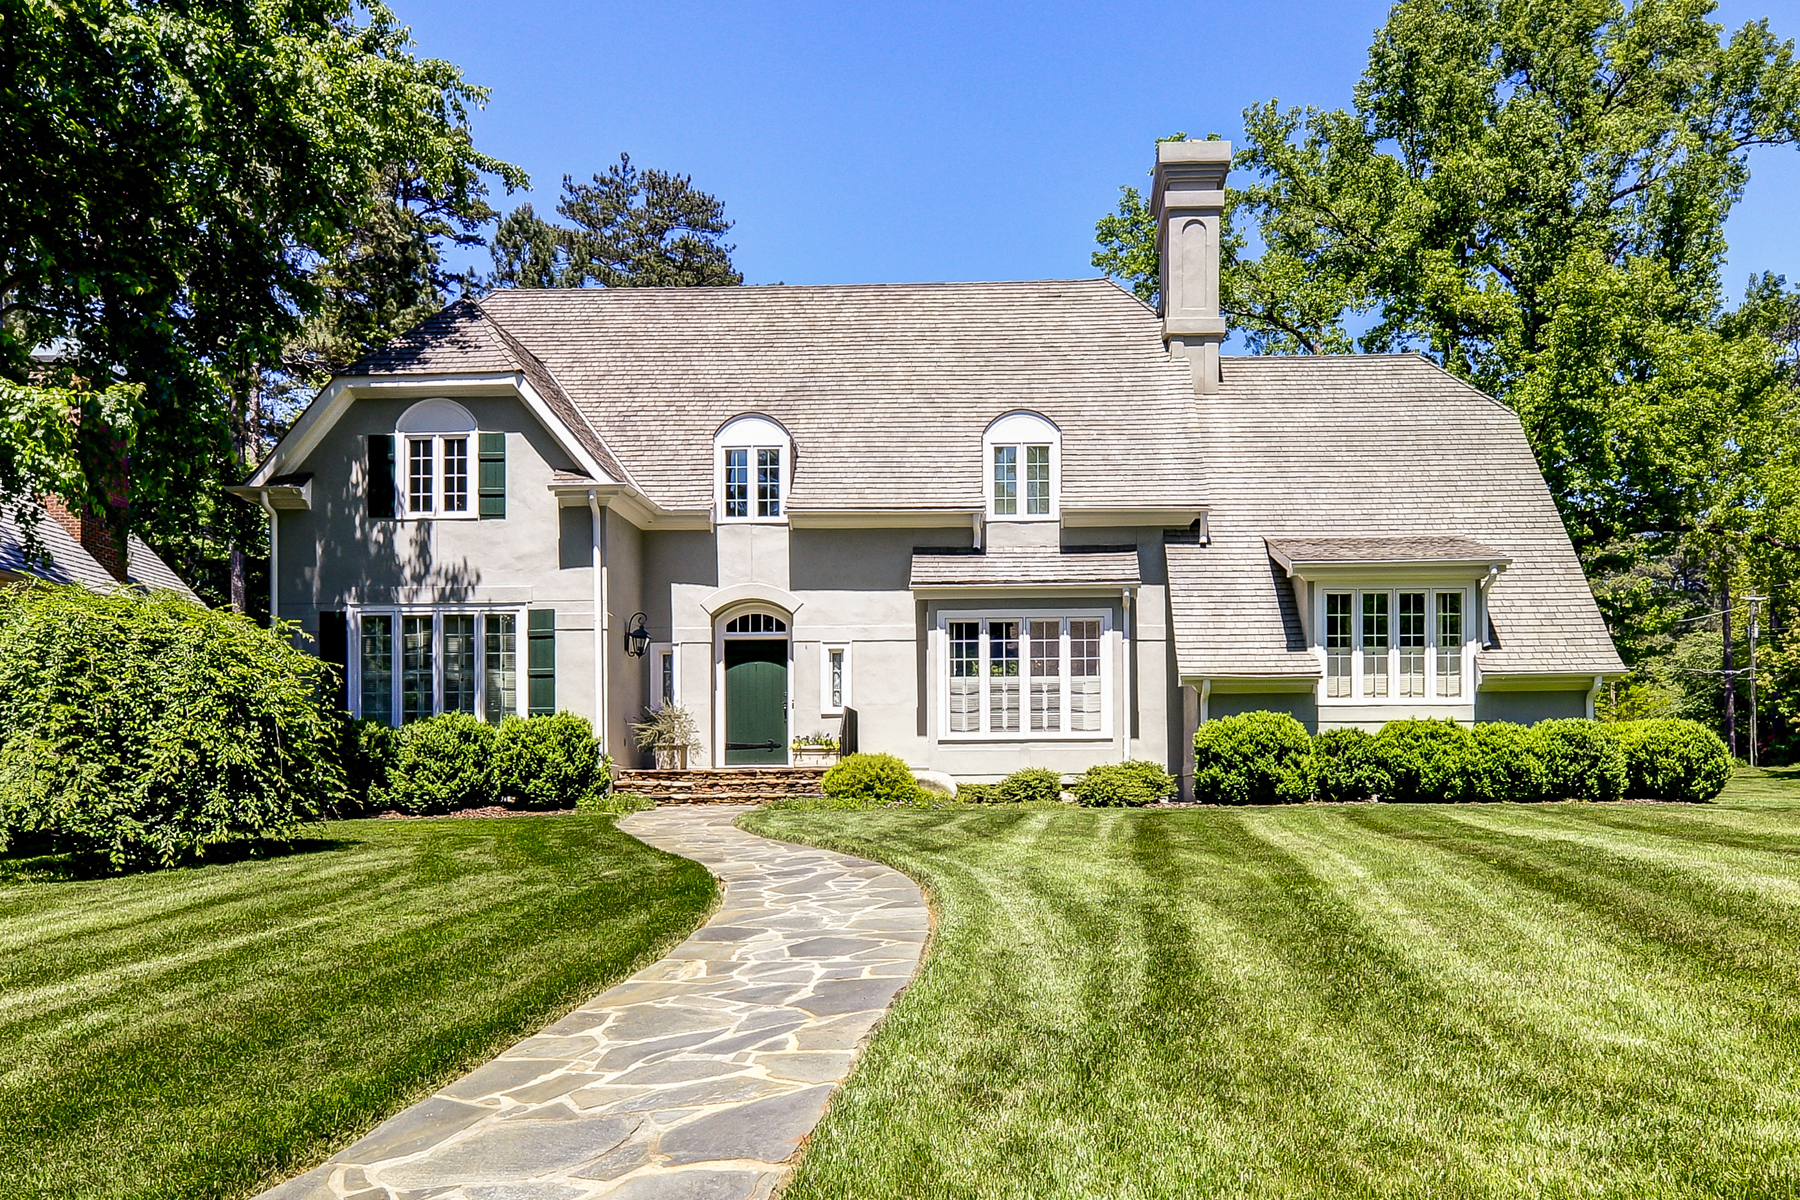 Property For Sale at Cozy European Elegance in Charming Historic Brookhaven Setting